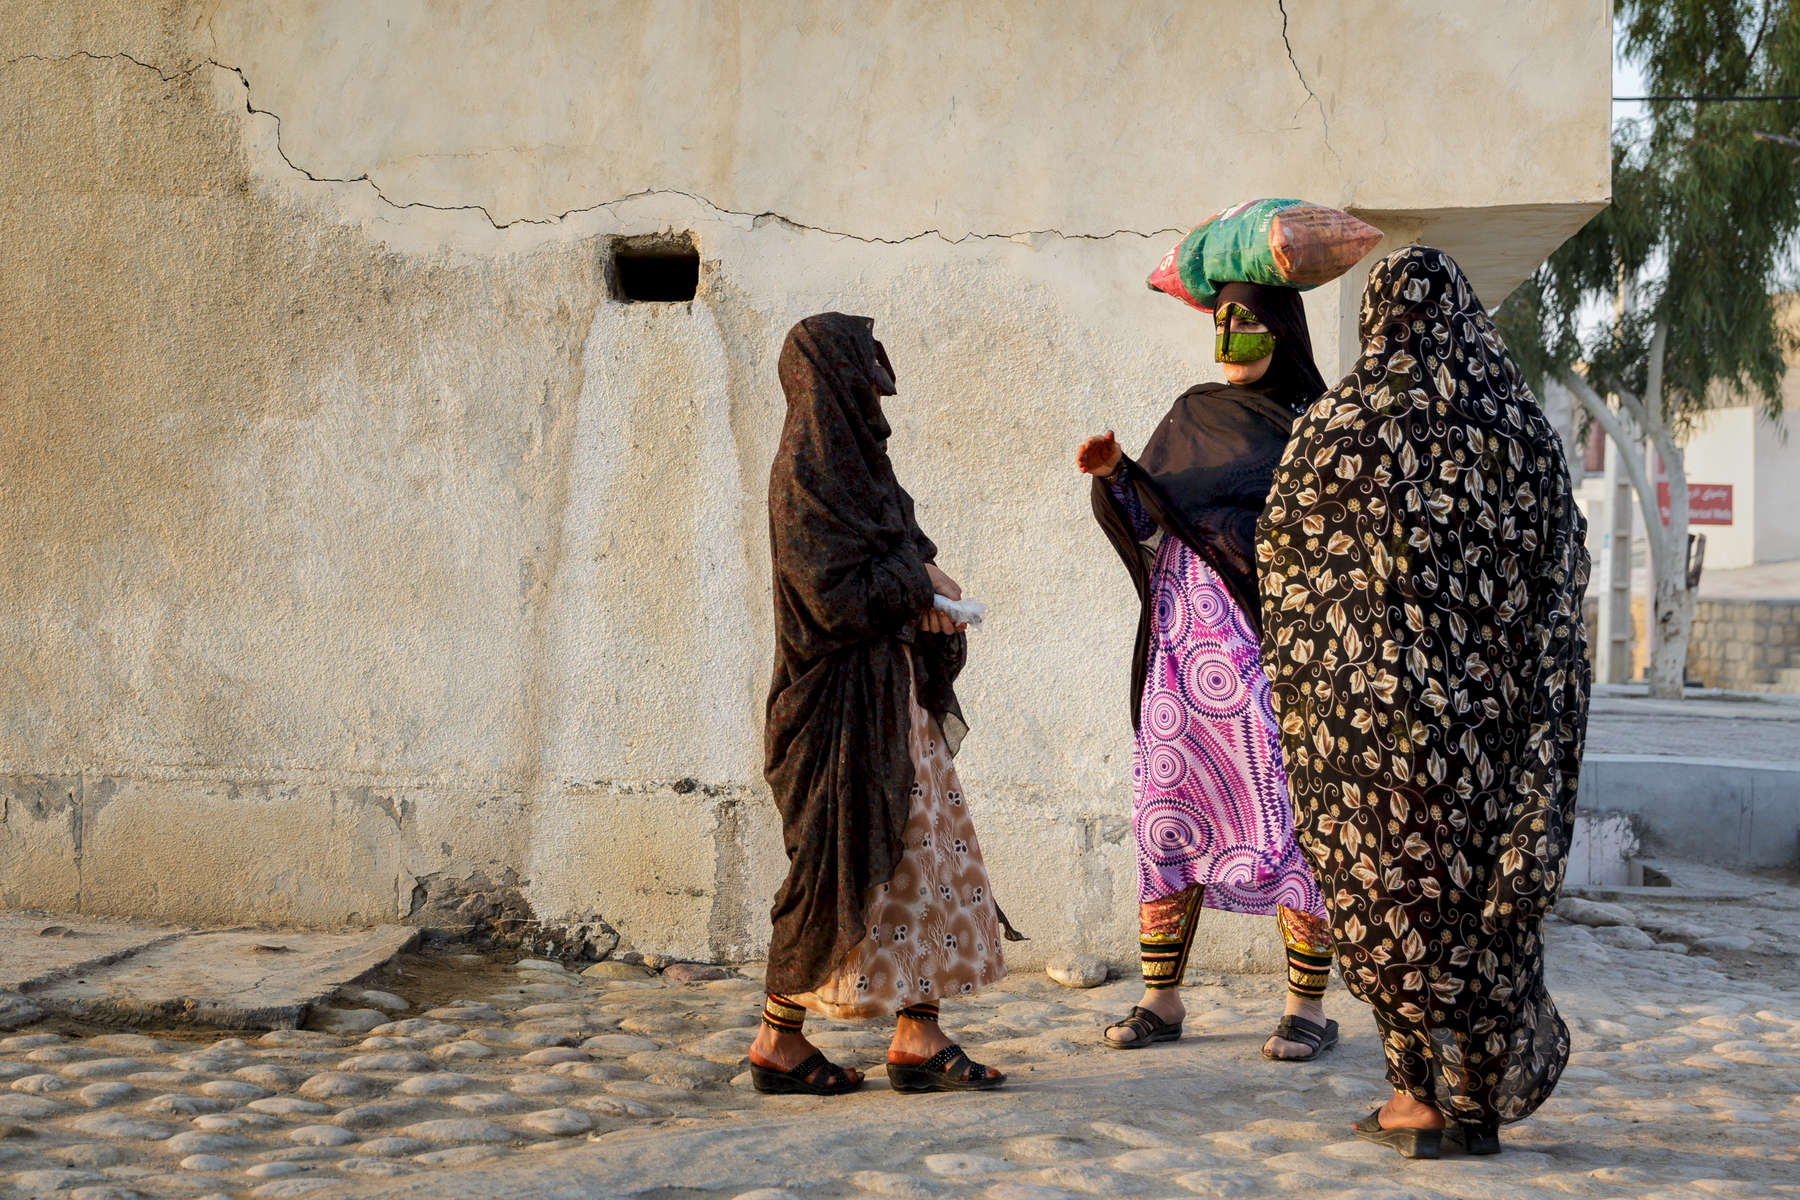 Women in the Persian Gulf port town of Laft, Qeshm Island.  The traditional masks the women wear differ from region to region around the Gulf coast and Islands, with the strong gold/green a feature on Qeshm.